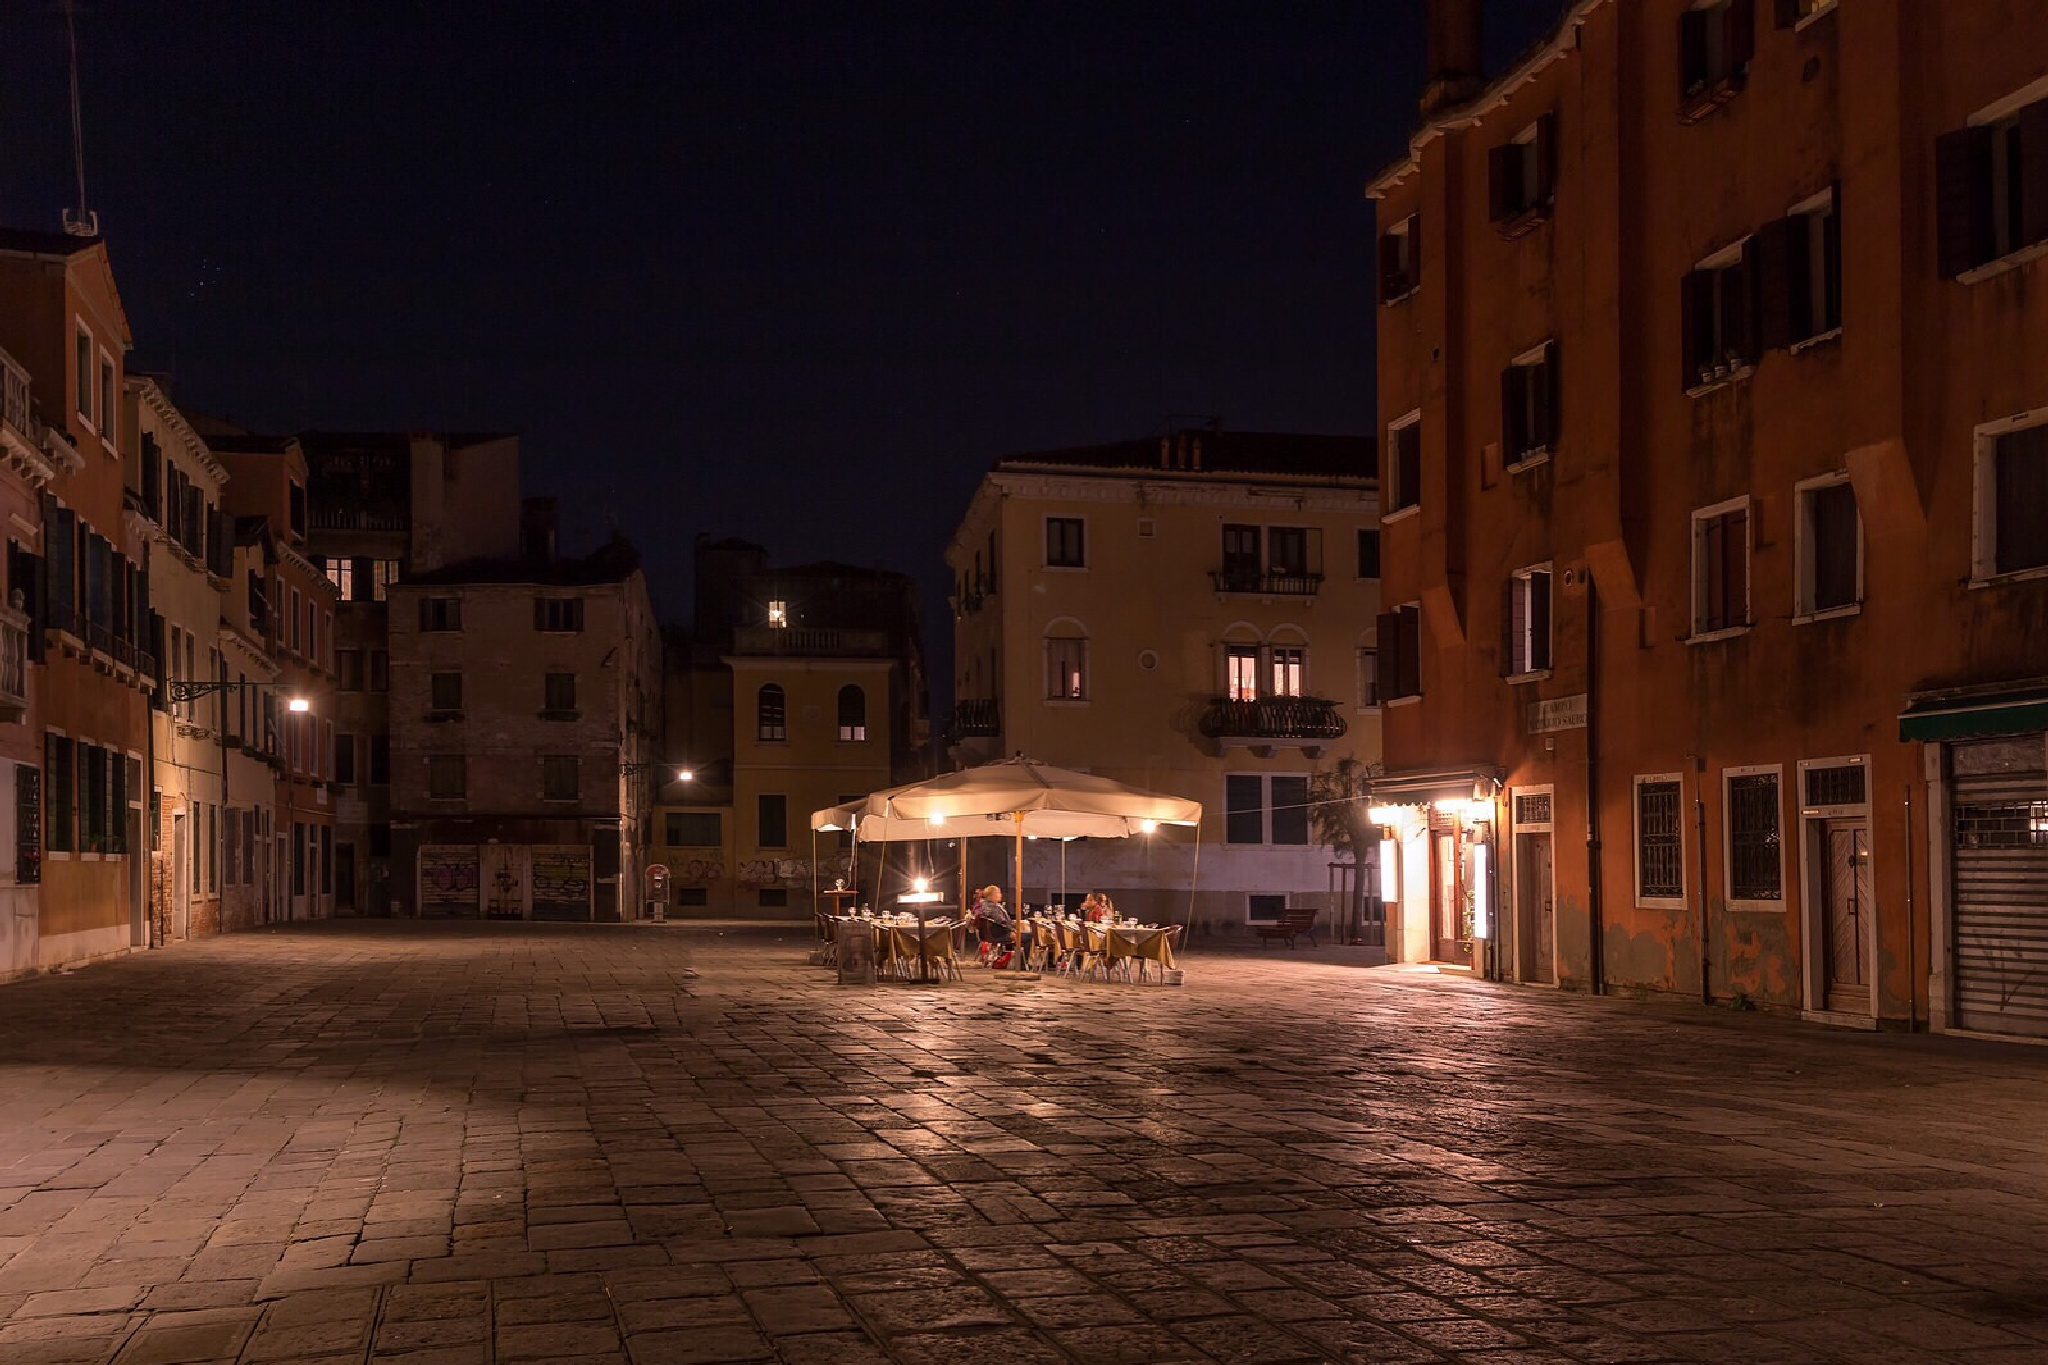 Santa Croce by night  by Rob Menting